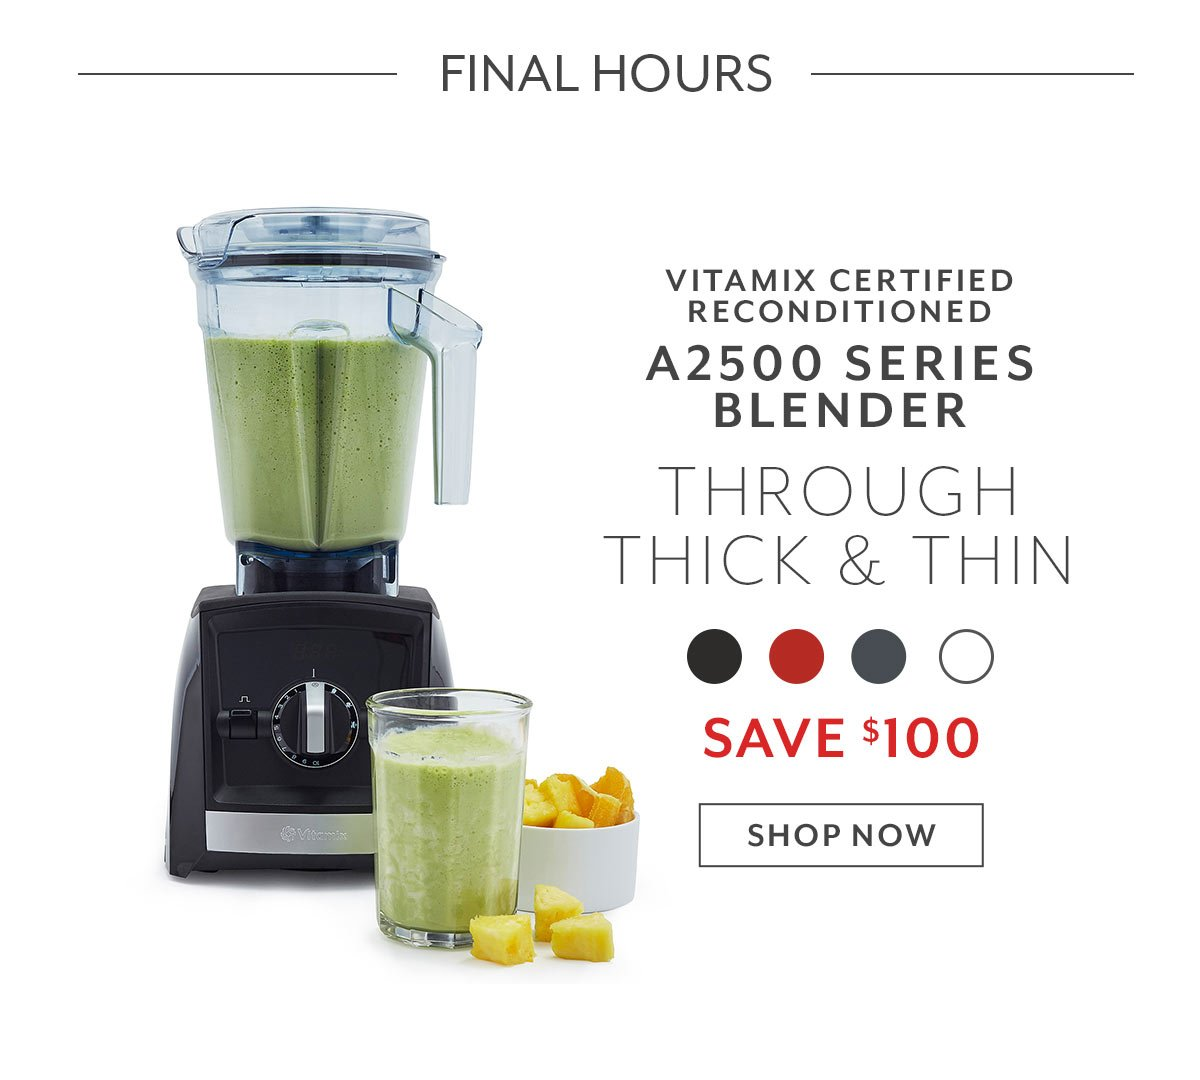 Vitamix Certified Reconditioned A2500 Series Blender